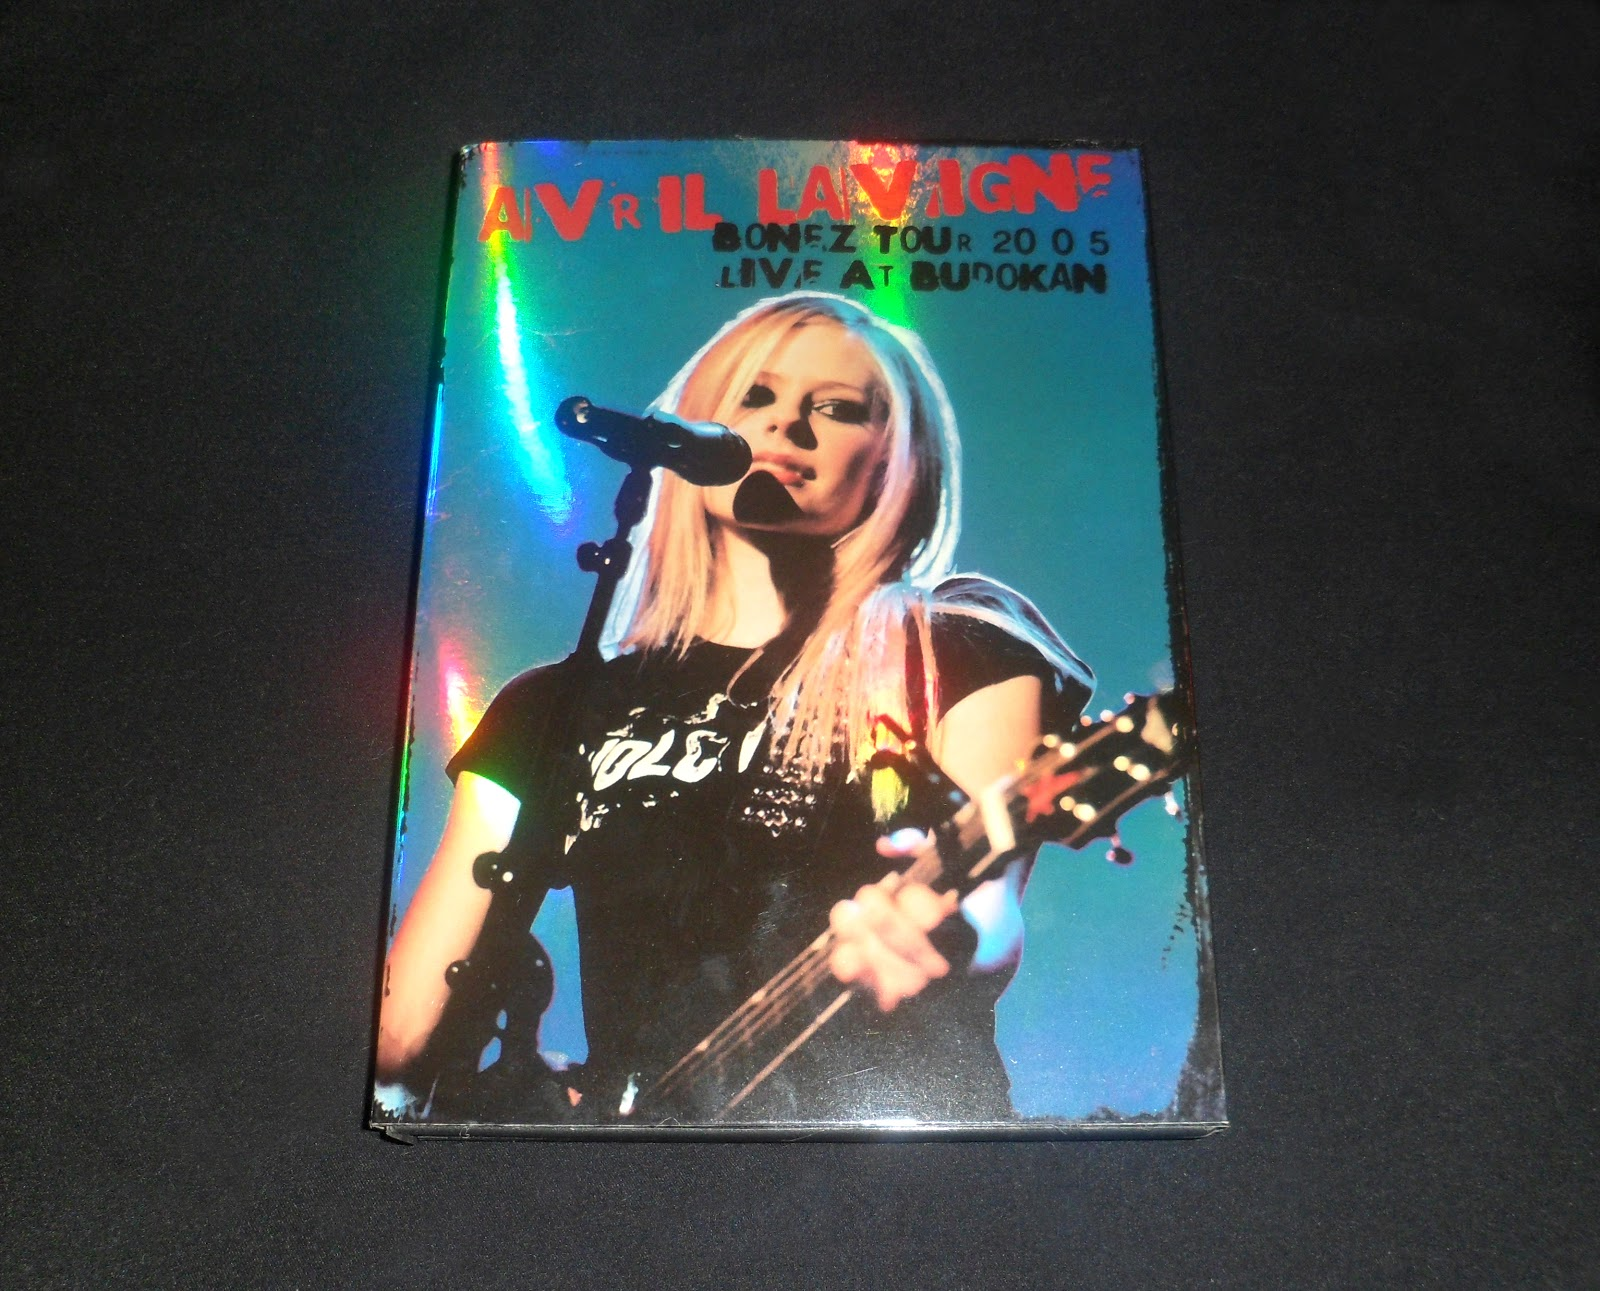 show avril lavigne bonez tour 2005 live at budokan